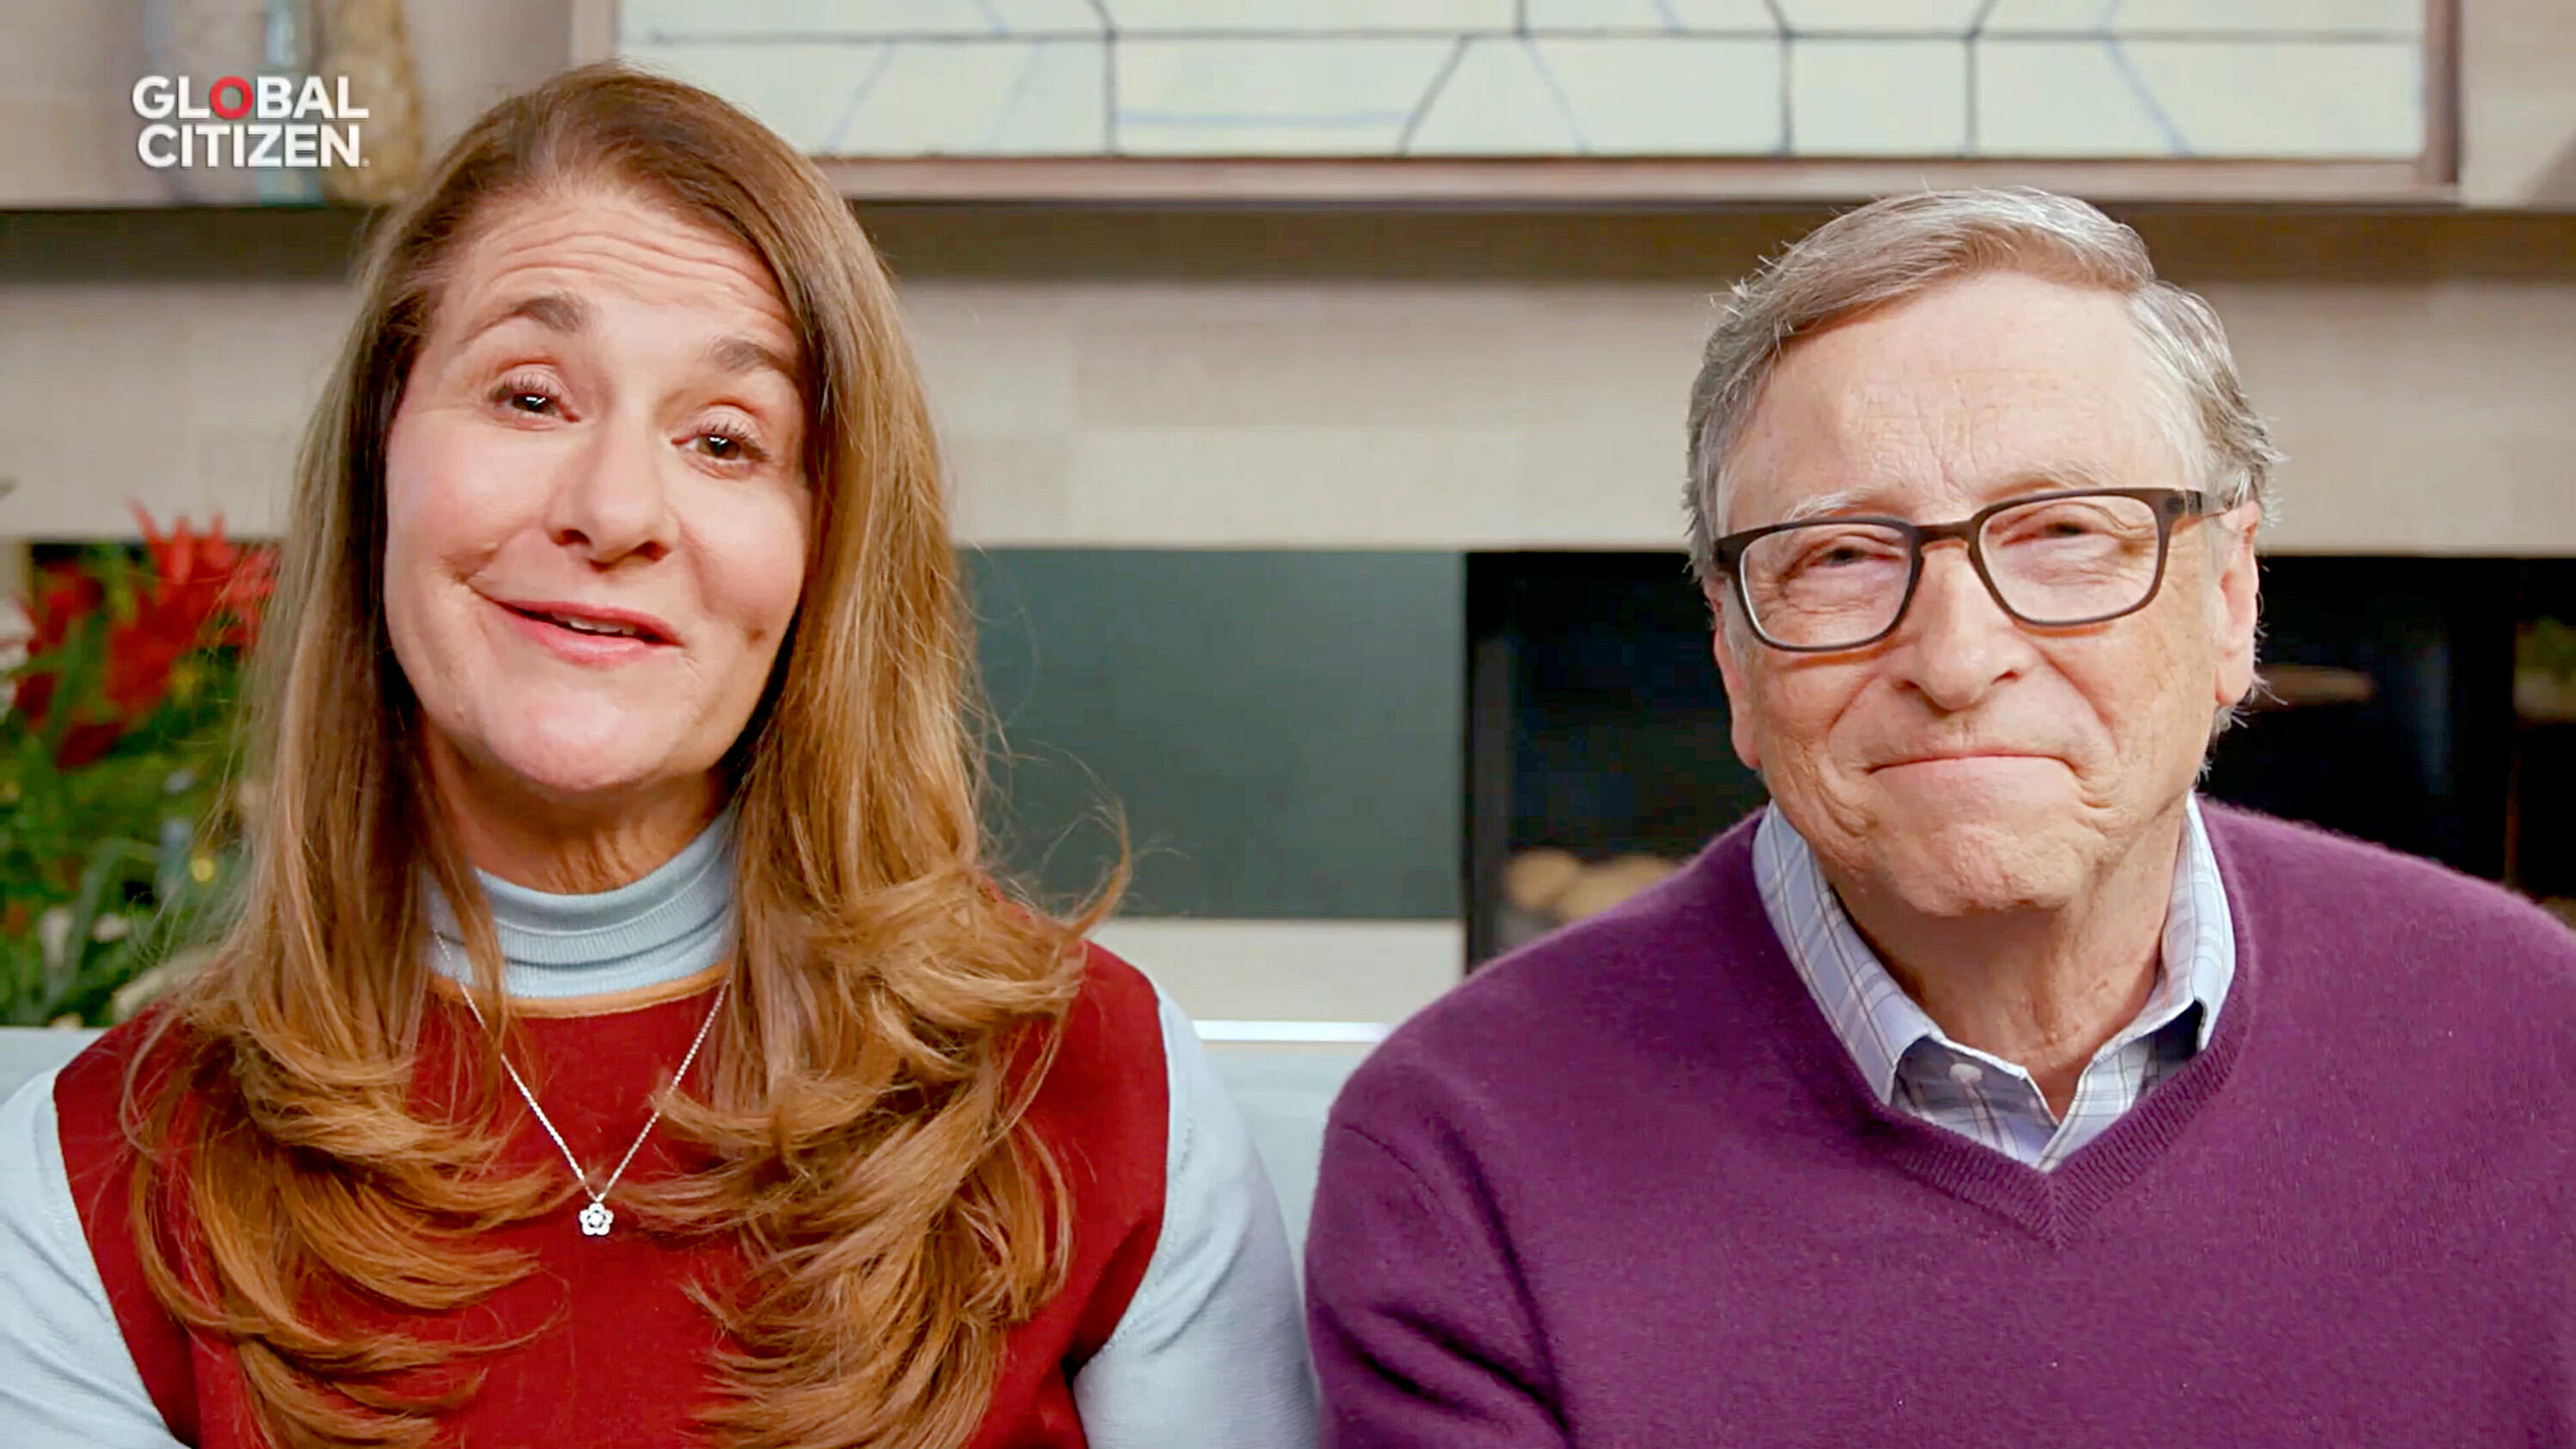 Bill And Melinda Gates To Separate After 27 Years Of Marriage Cnet